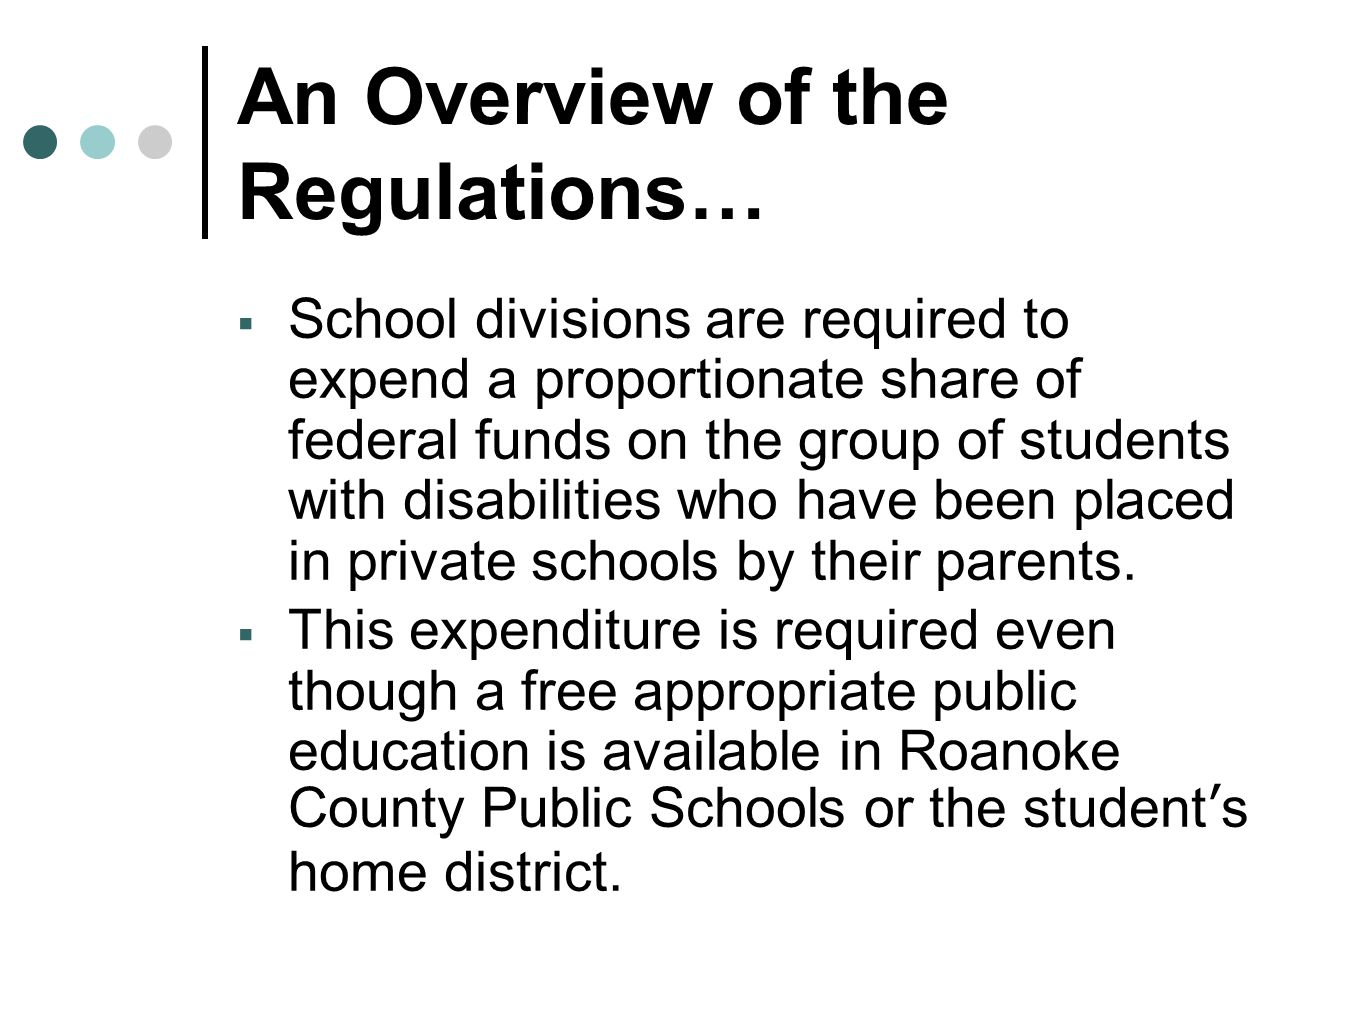 An Overview of the Regulations…  School divisions are required to expend a proportionate share of federal funds on the group of students with disabil